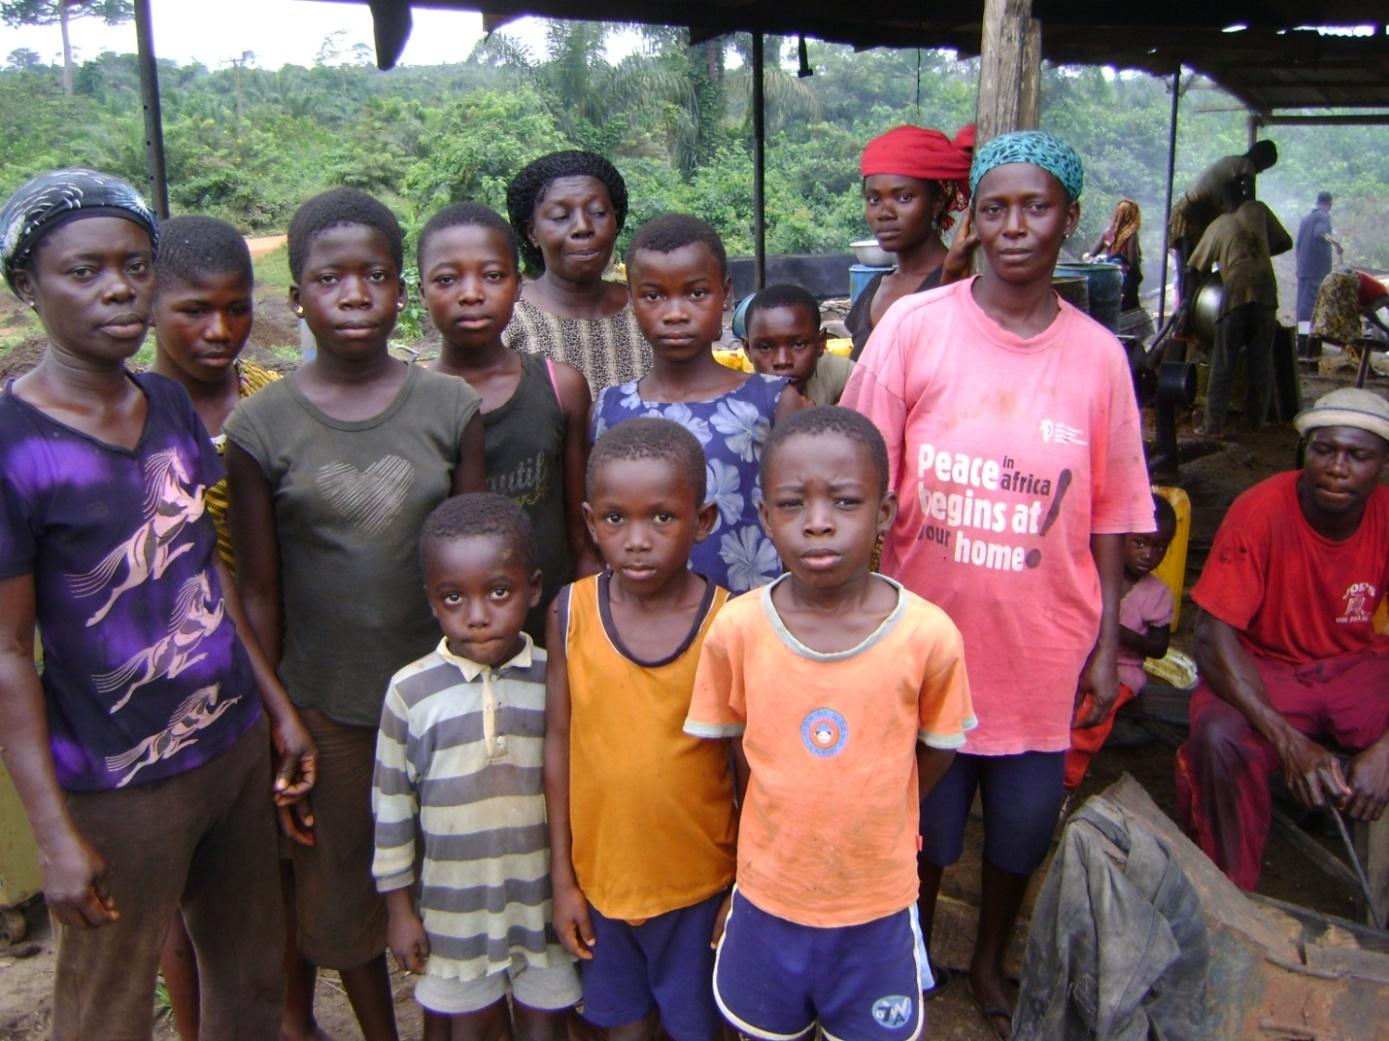 Photo: Forest fringe Dwellers of Pramkese Community in Ghana Picture by: Godson N.